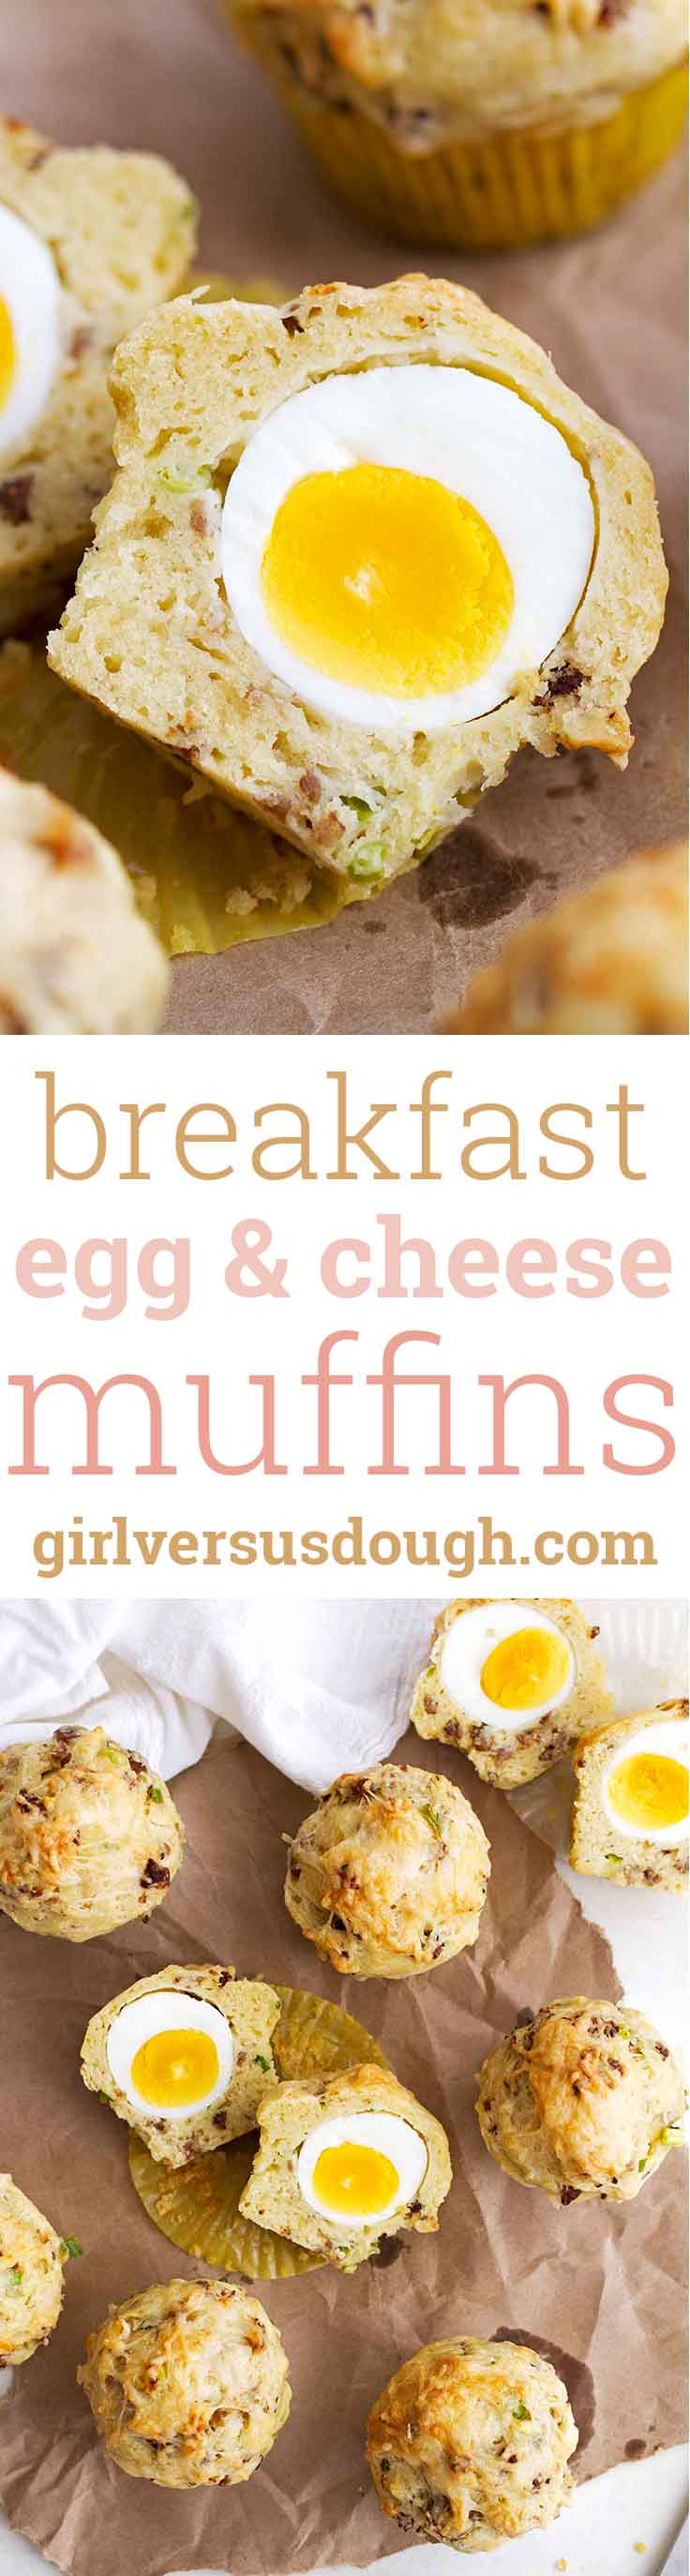 Breakfast Egg and Cheese Muffins -- An egg baked right into a flavorful sausage, scallion and cheese-stuffed muffin. The perfect to-go breakfast. girlversusdough.com @girlversusdough